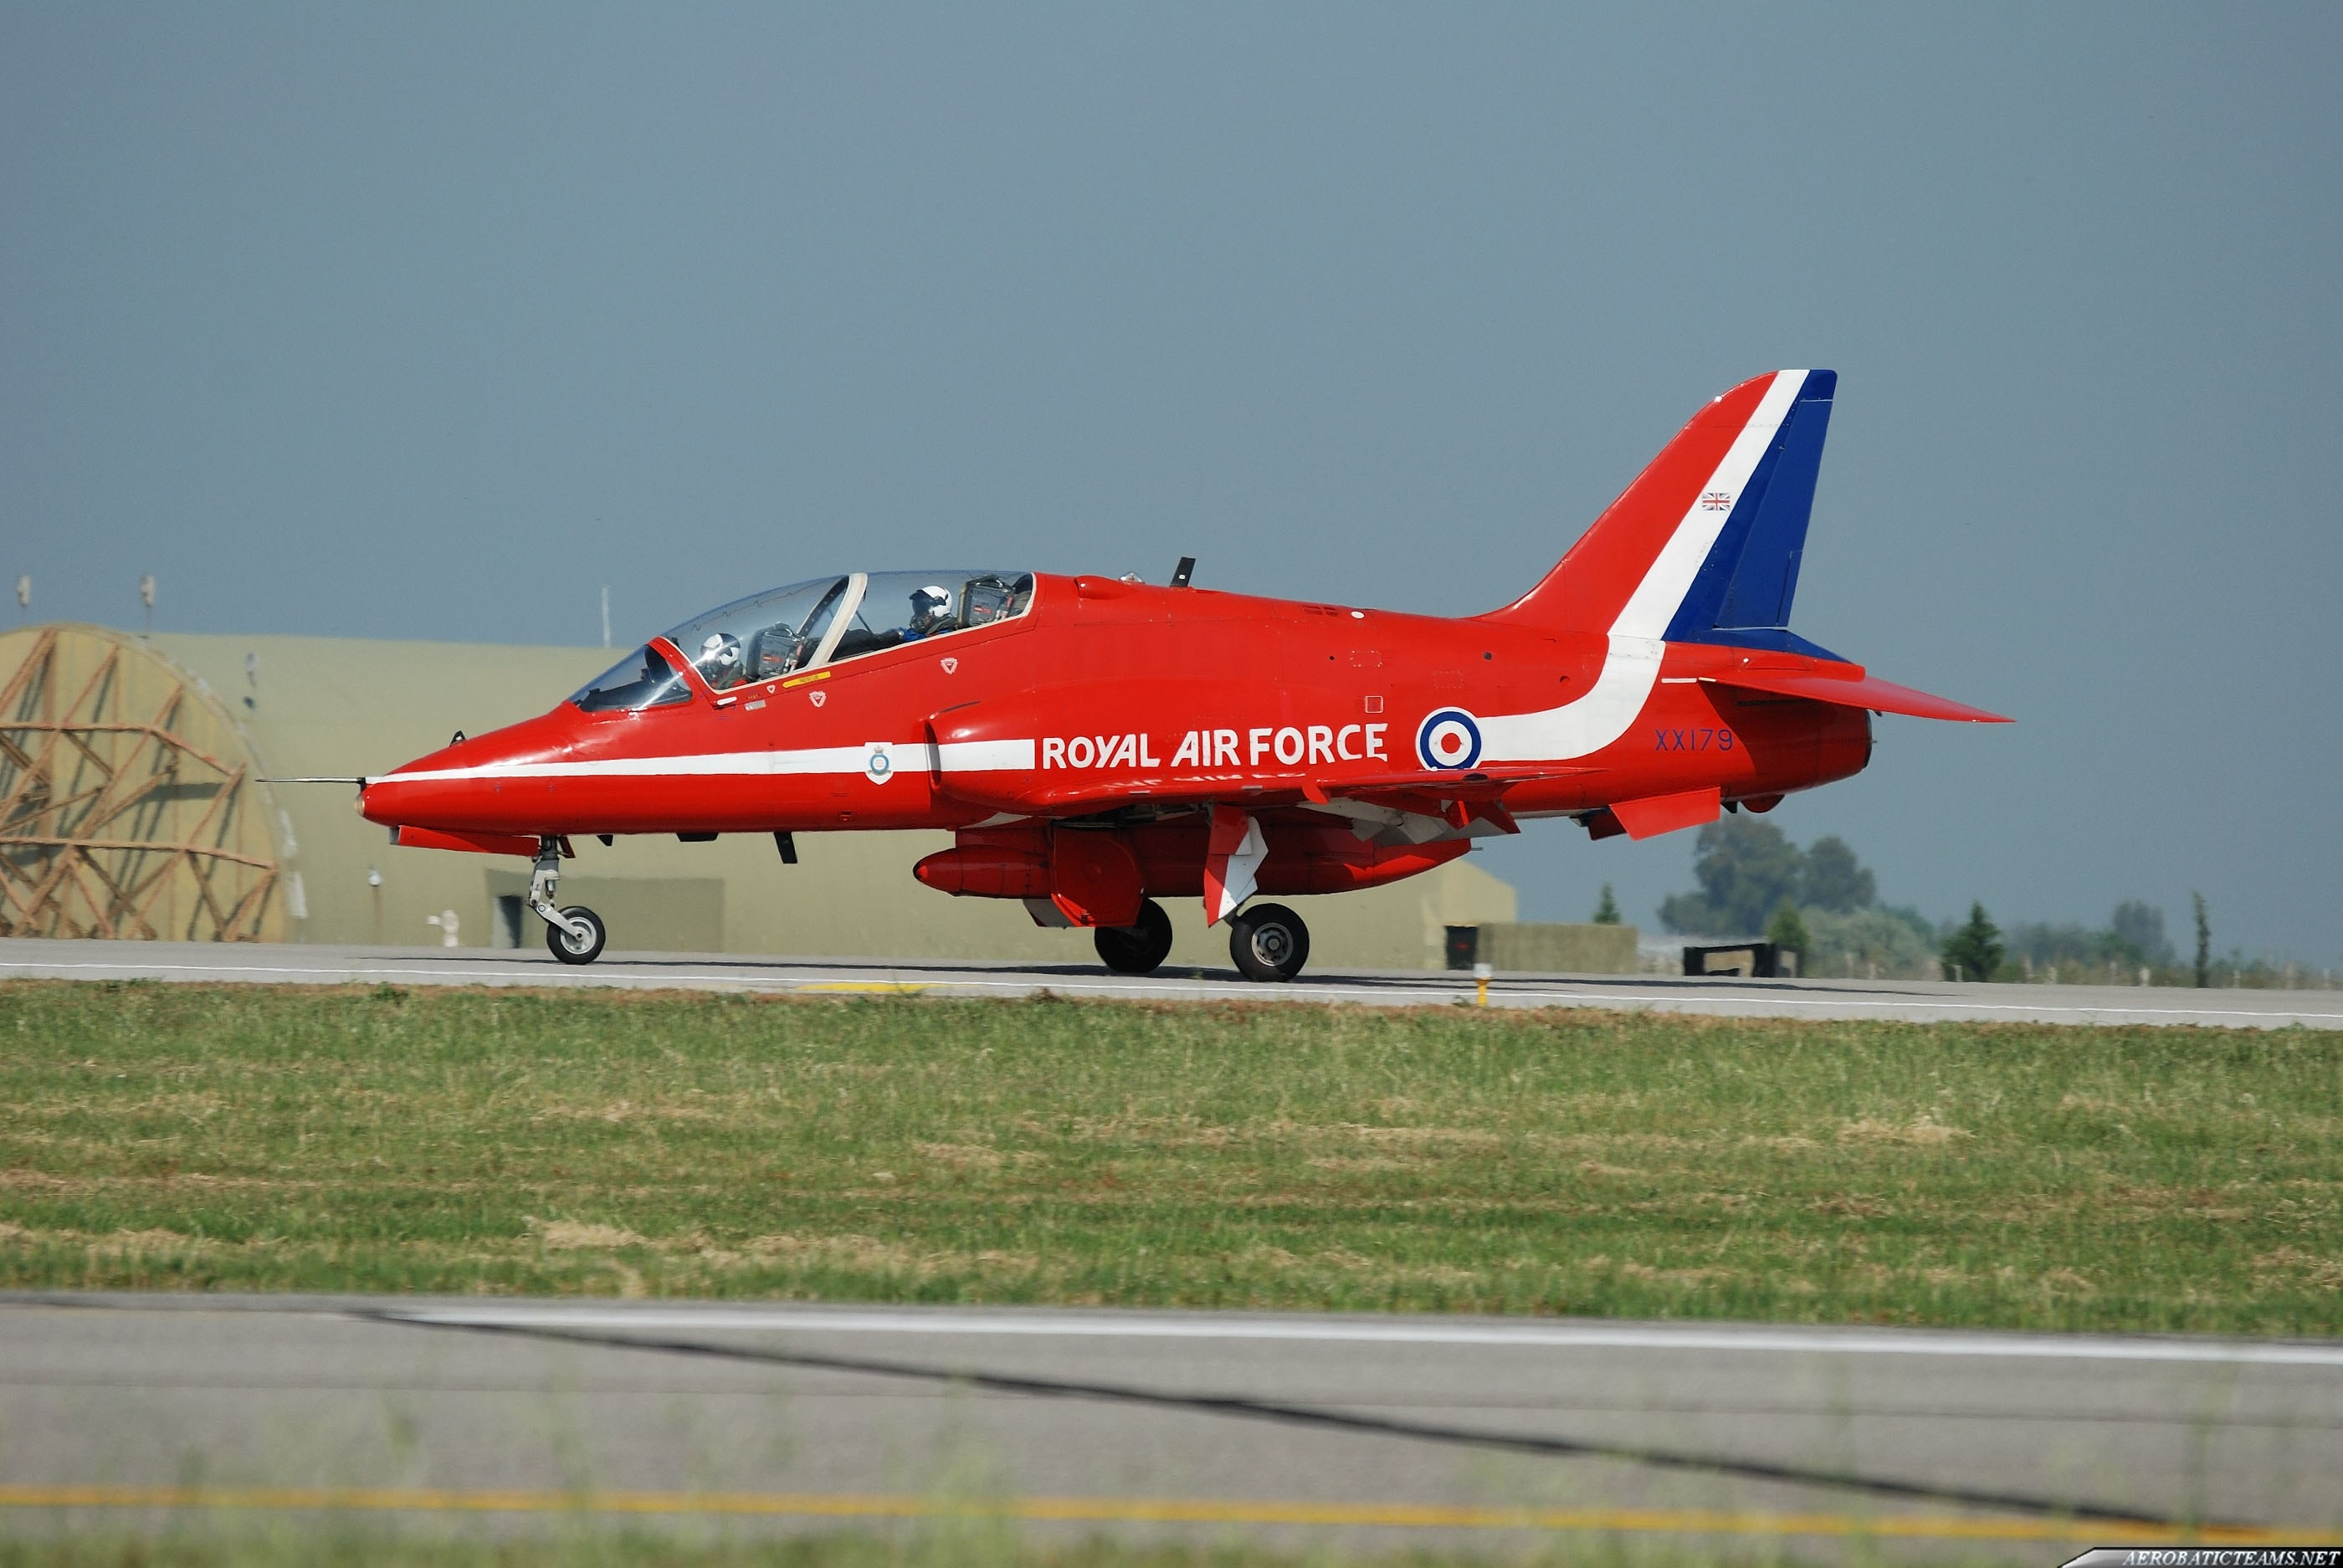 Red Arrows grounded due to ejection seat malfunction